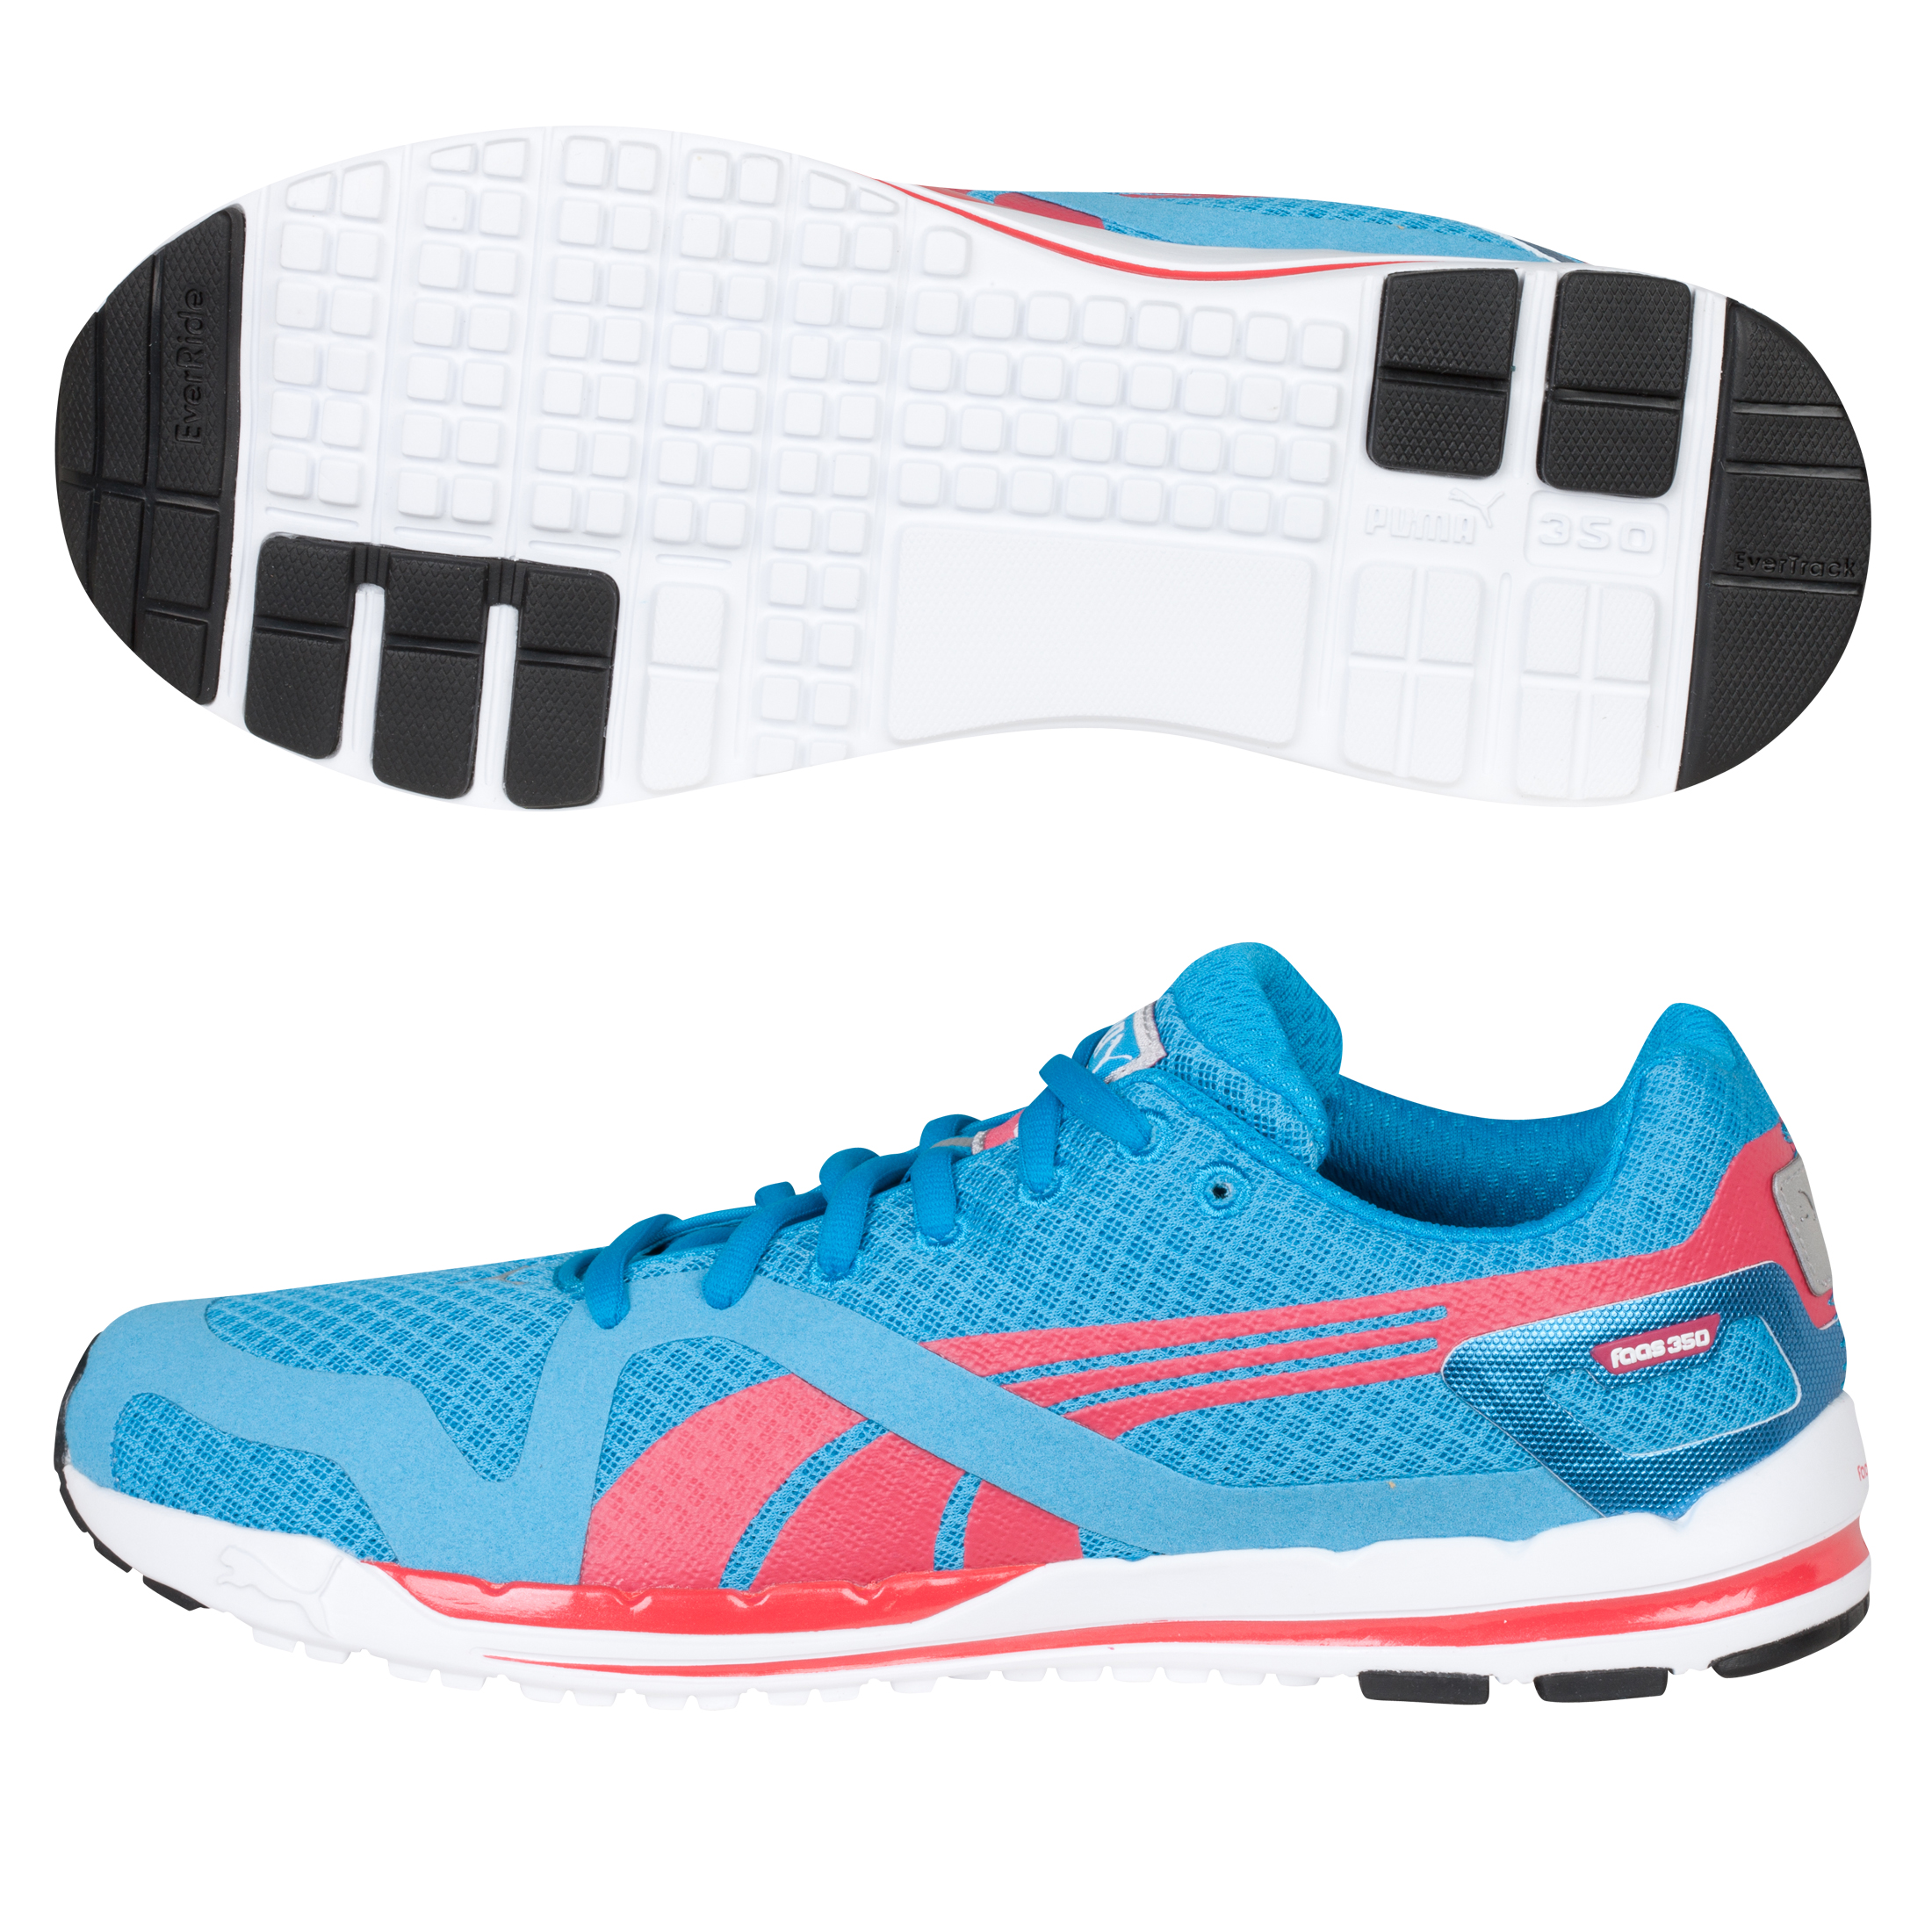 Puma 350 Stability Racer Trainers - Vivid Blue/White/Teaberry Red - Womens